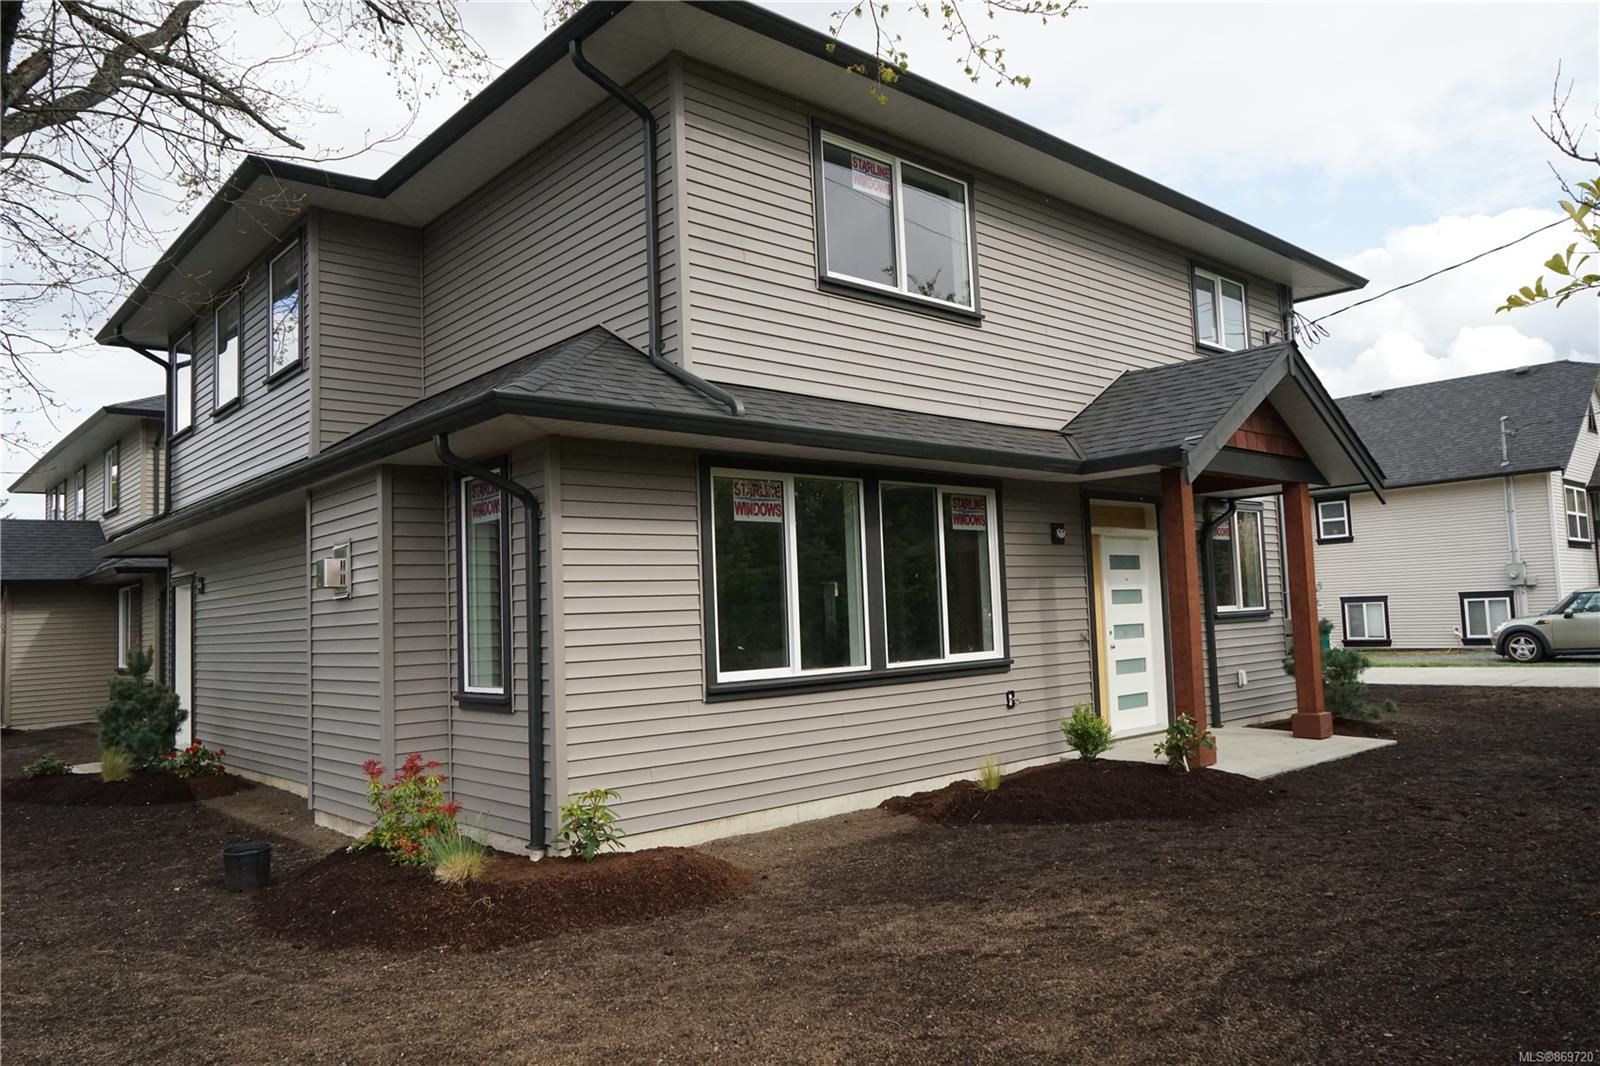 Photo 3: Photos: 770 Bruce Ave in : Na South Nanaimo House for sale (Nanaimo)  : MLS®# 869720